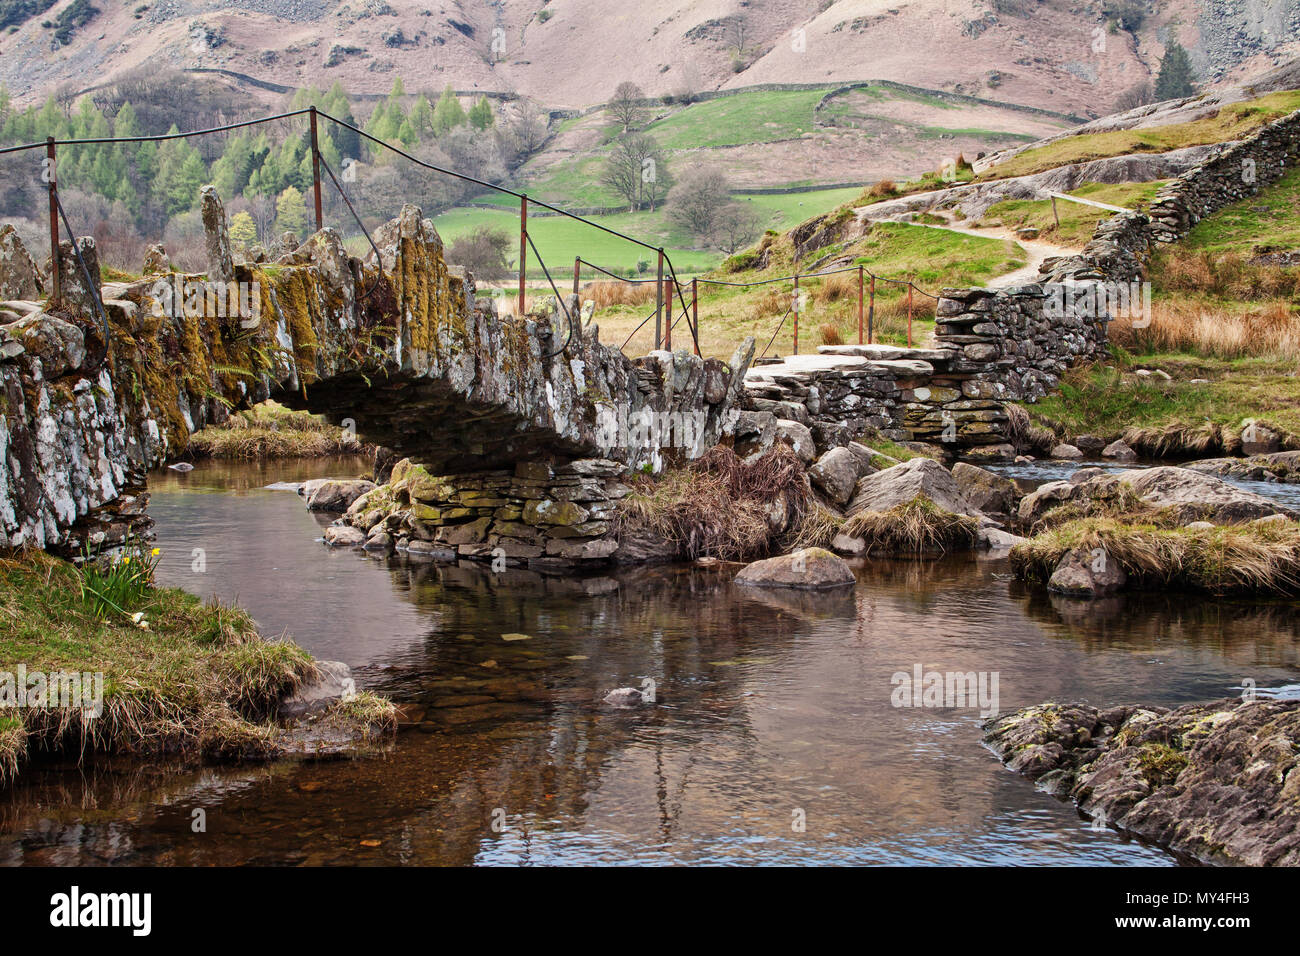 Patterns of construction juxtaposed with nature at Slater Bridge, Little Langdale, Lake District - Stock Image